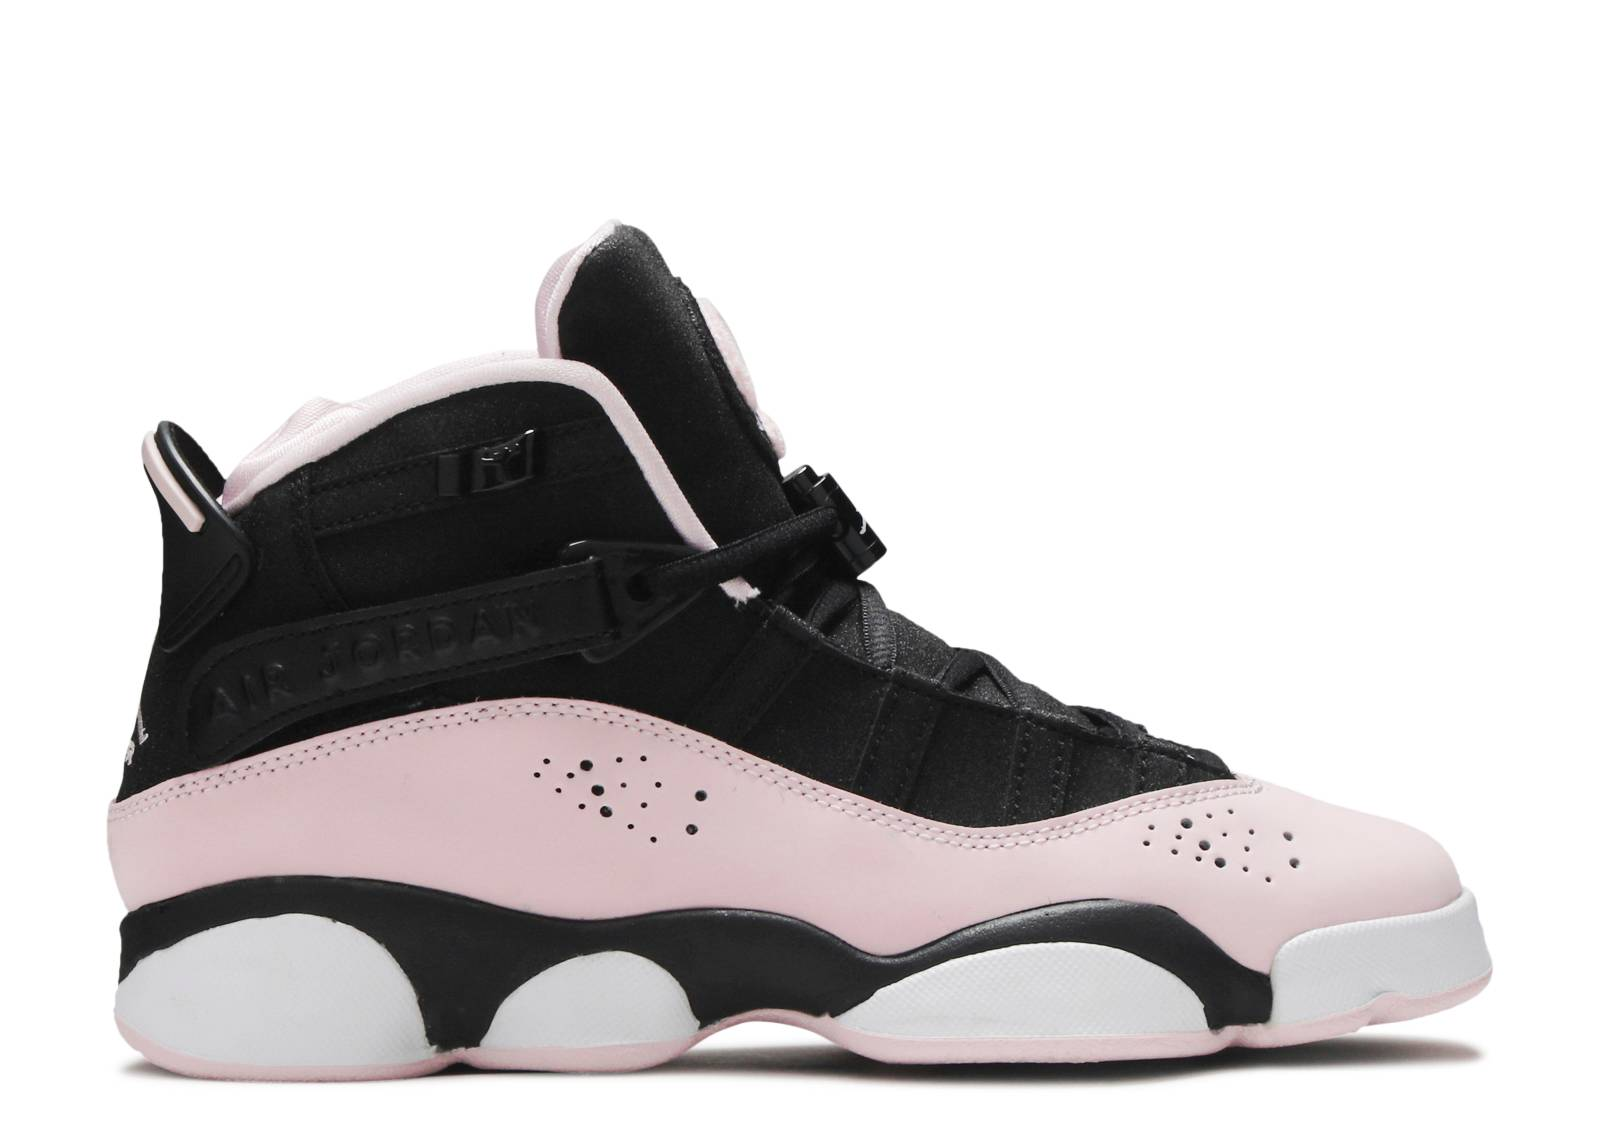 new concept 6ea07 bbd90 Jordan 6 Rings GS 'Black Pink Foam'